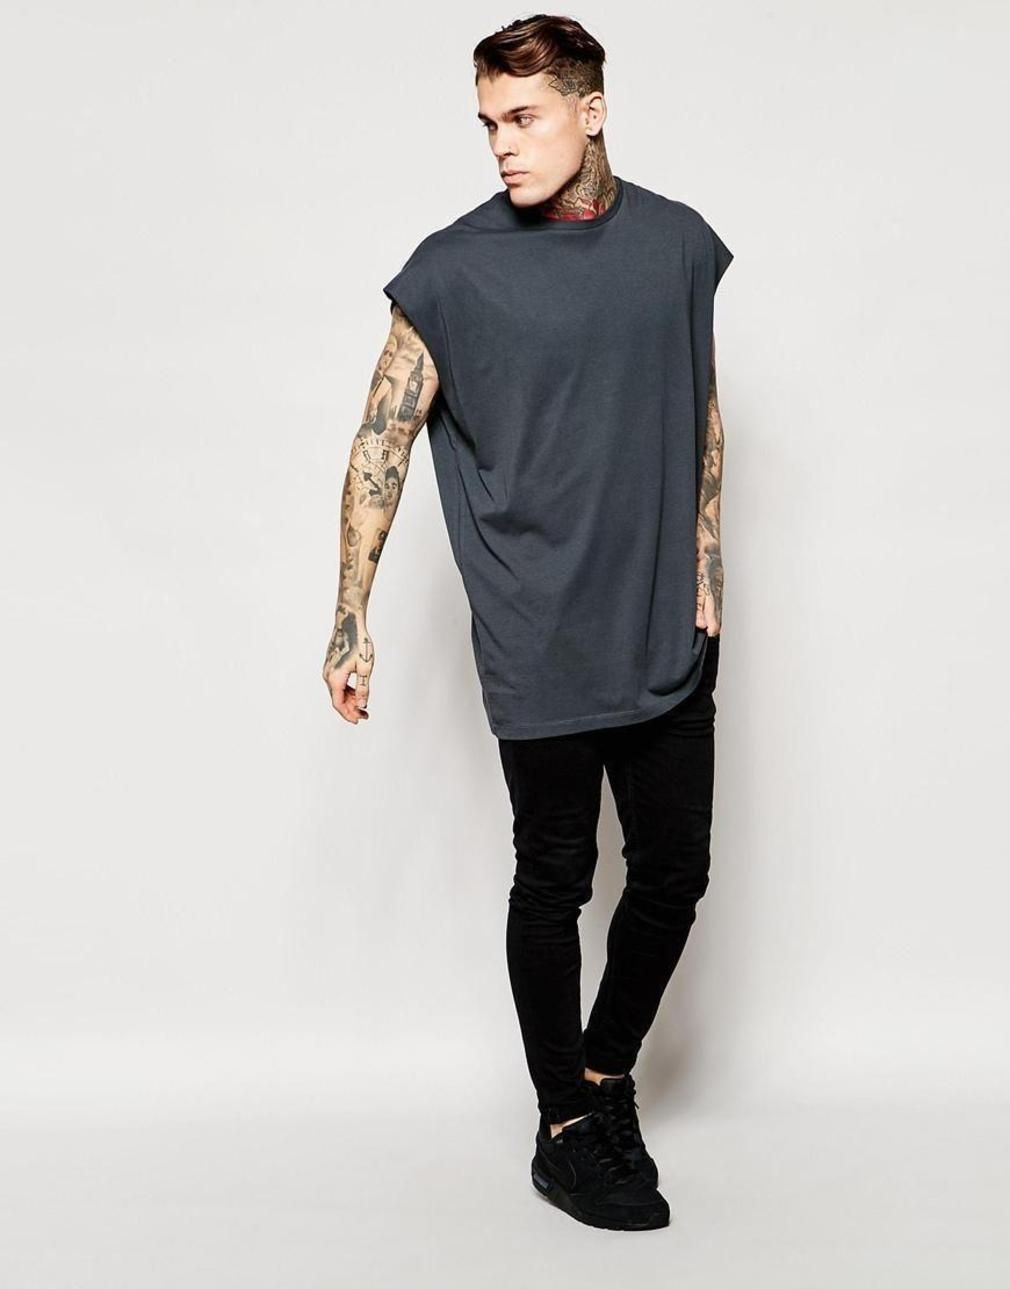 Super Oversized Sleeveless T Shirt In Gray With Raw Edge Outfit Men39s Digital Circuit Board Tshirt 2xlarge Light Blue Clothing